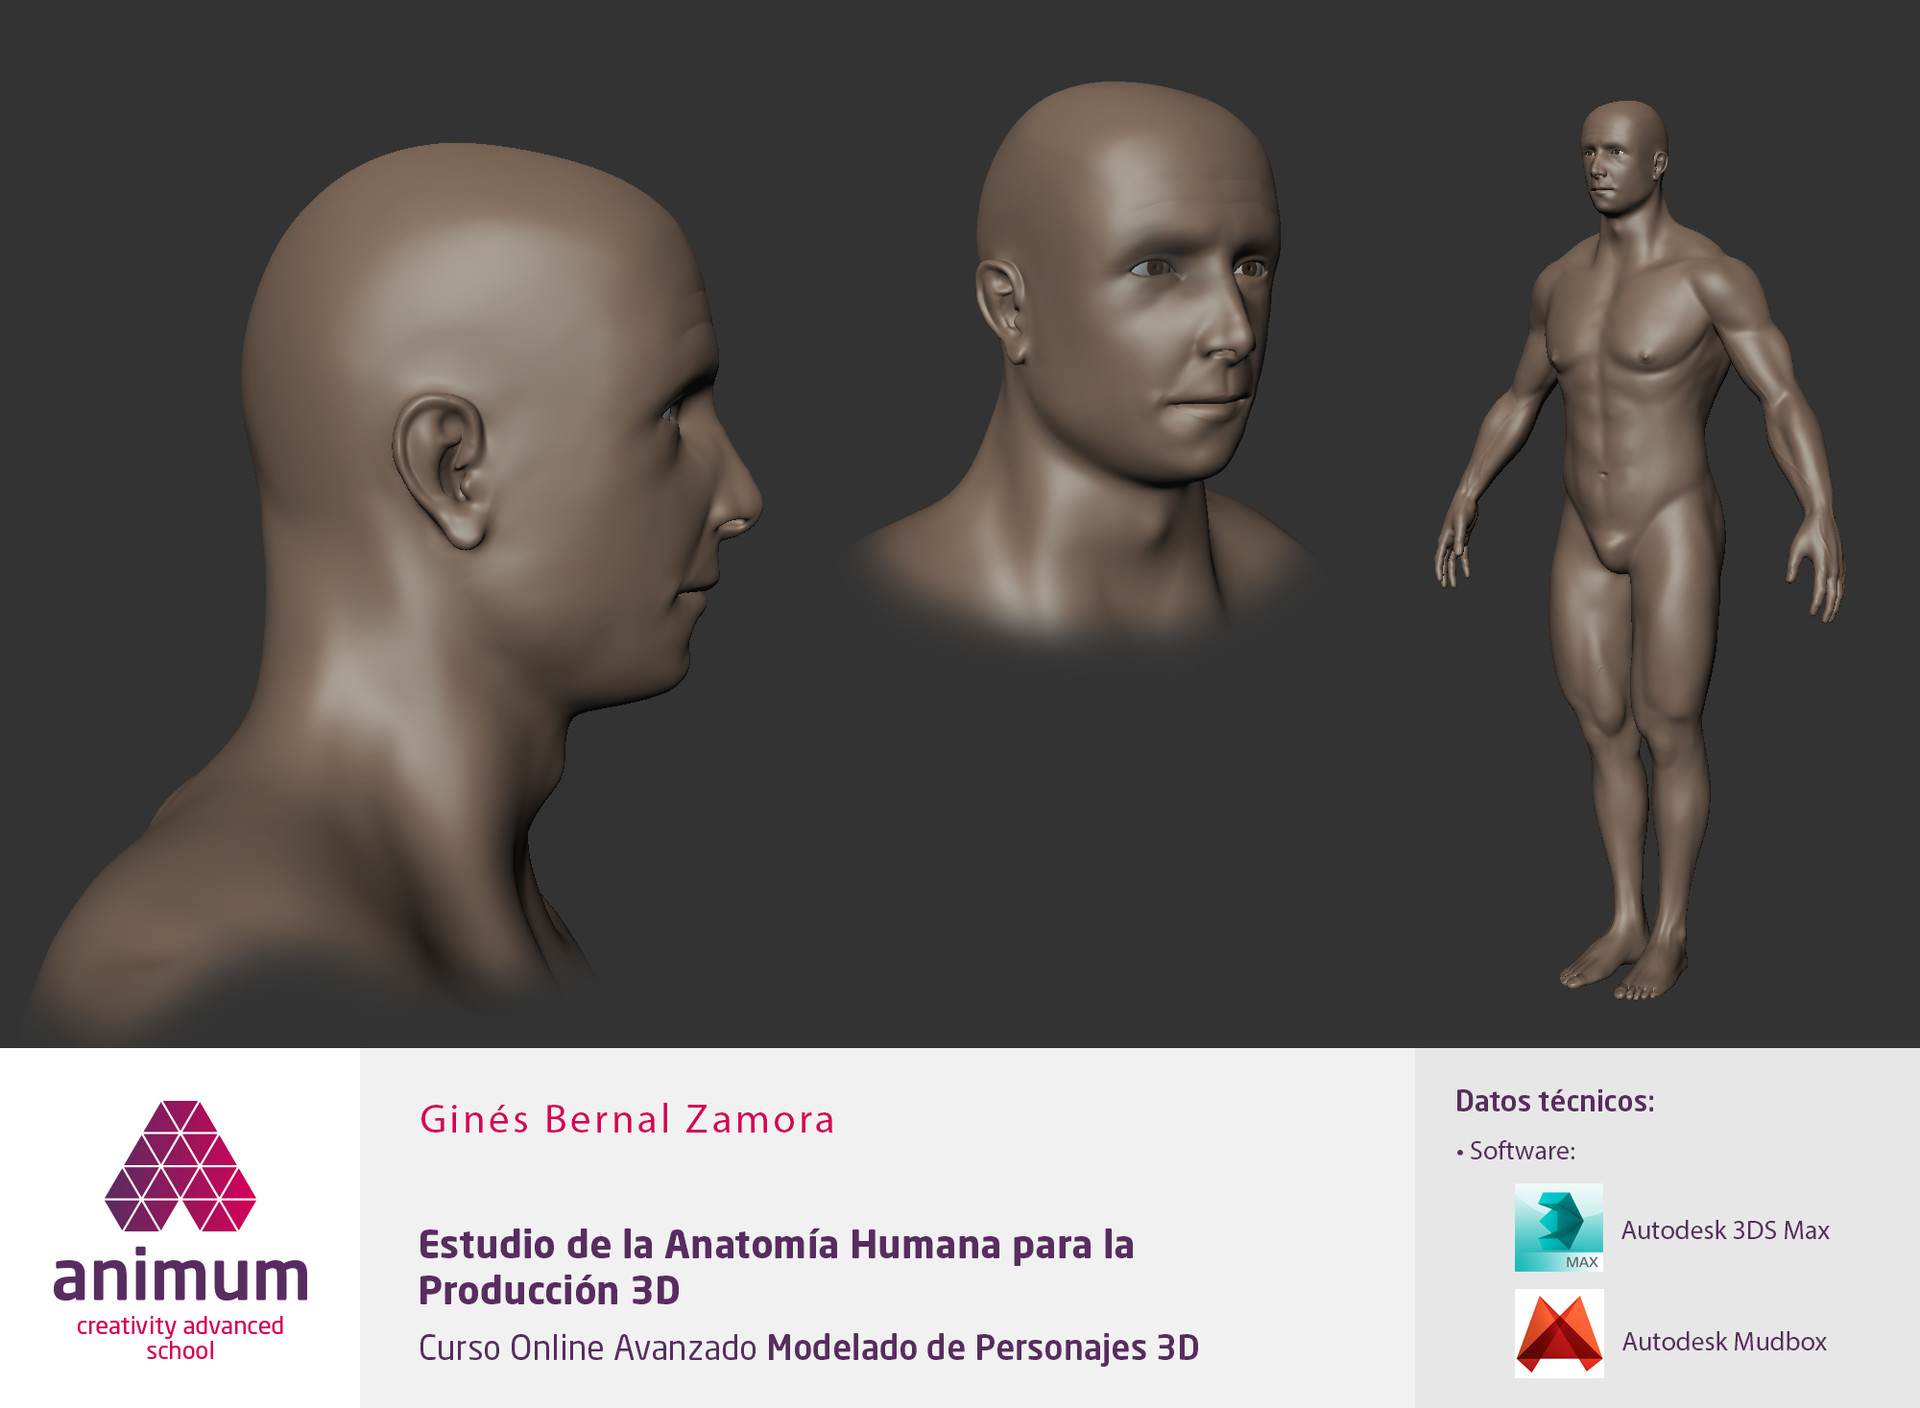 ArtStation - Study of human anatomy., Tito Bernal